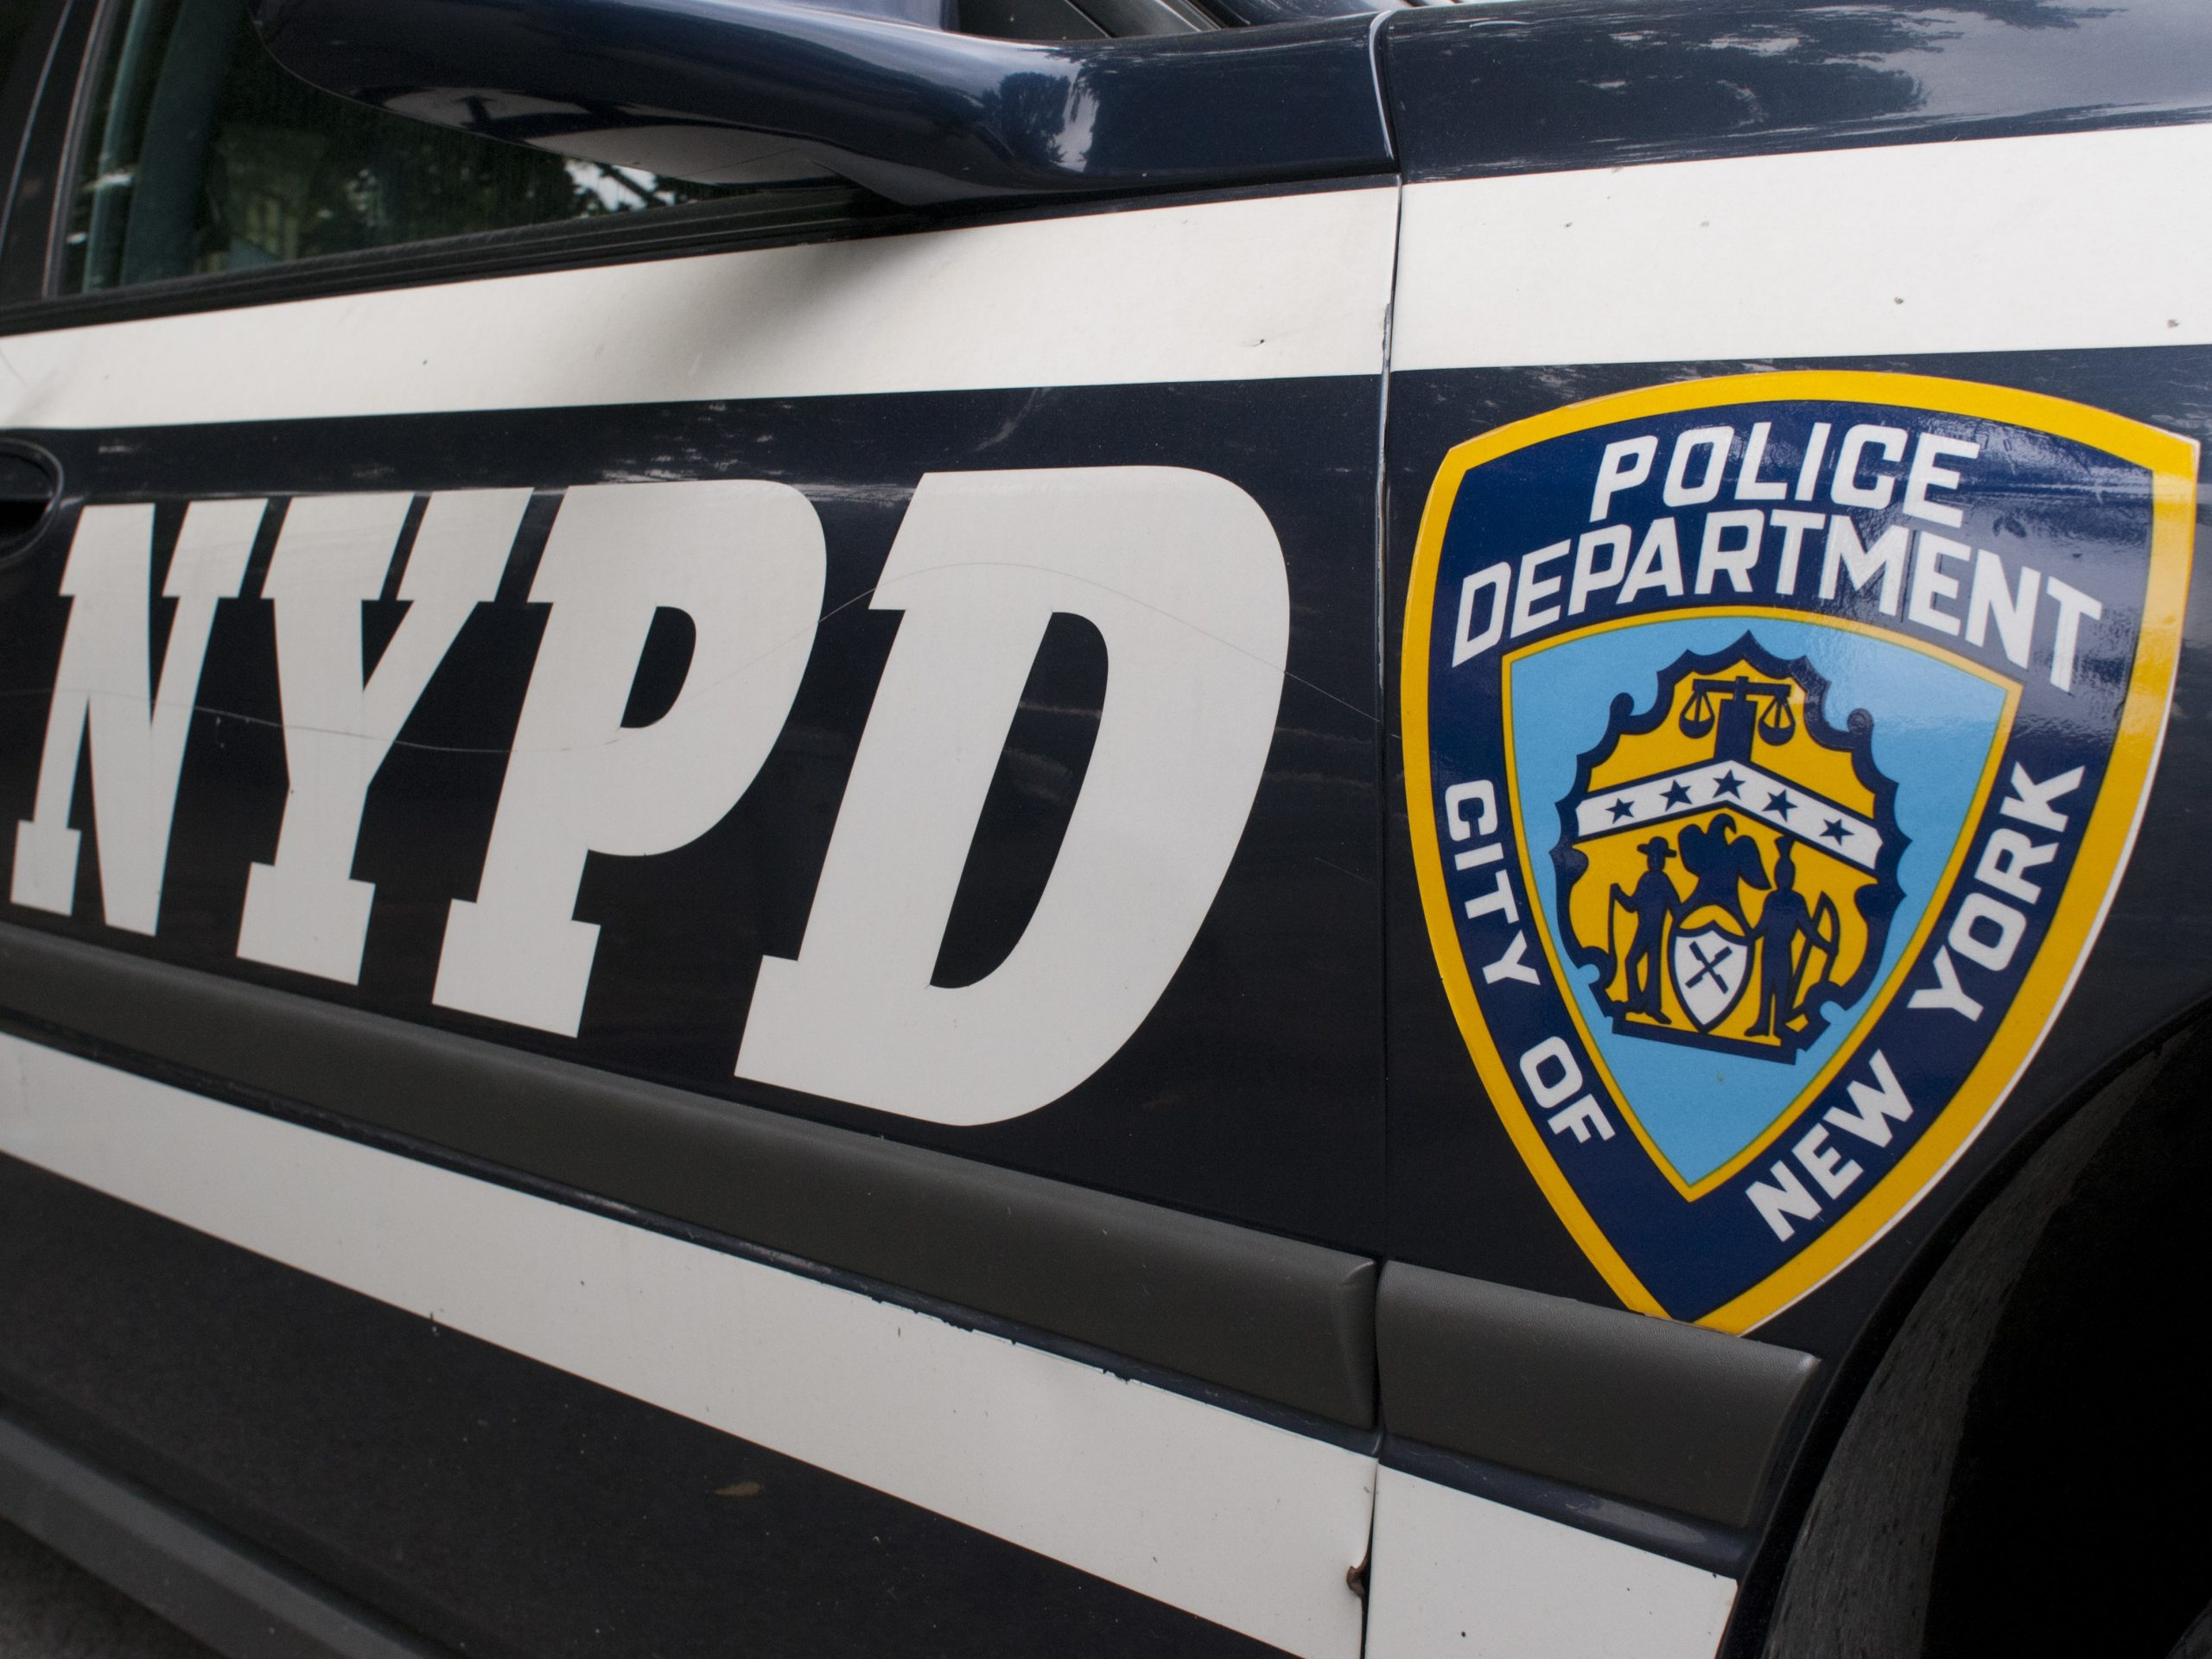 Three police were injured during an incident in Brooklyn on Wednesday night. A suspect is in custody.